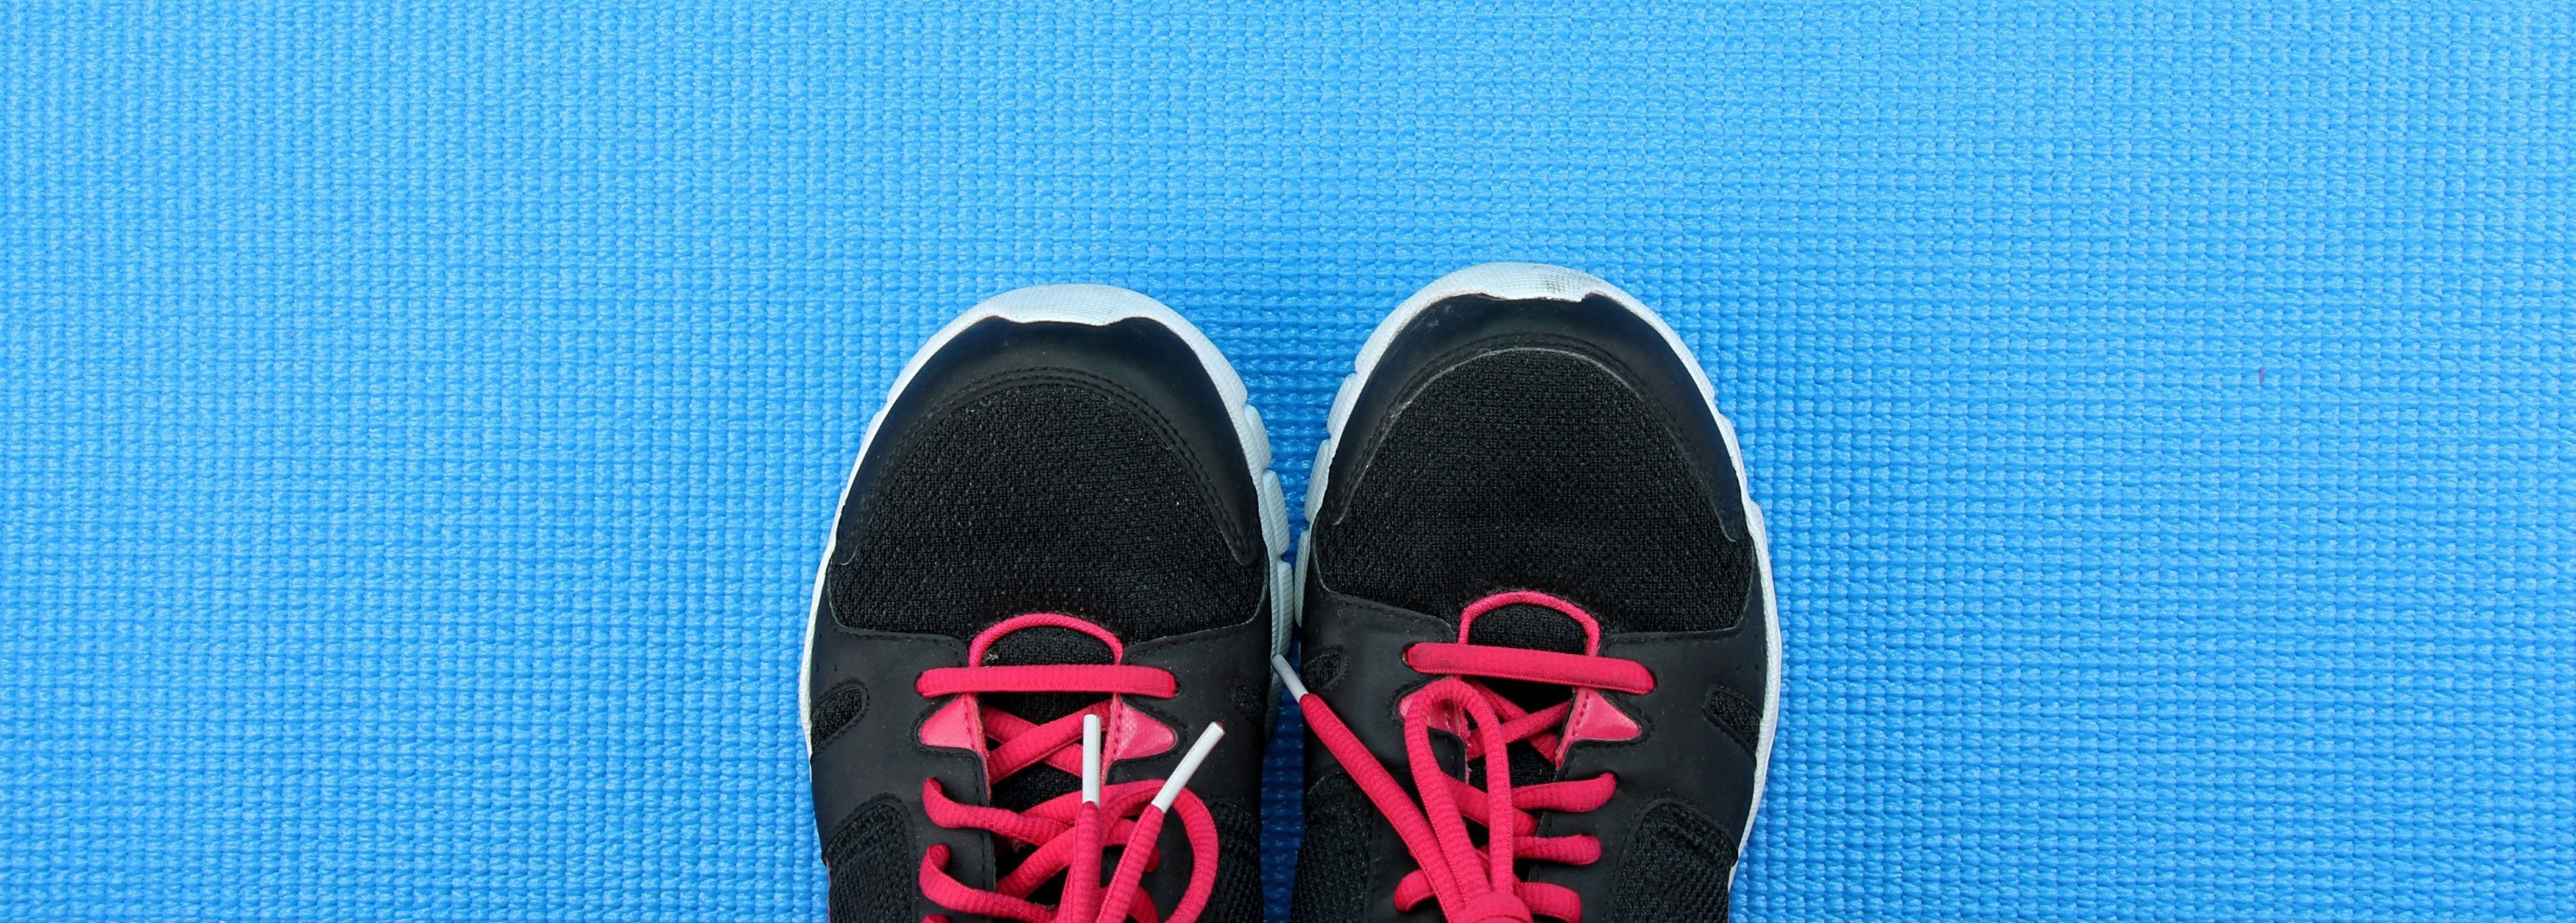 Indoor exercises can be fun and save you money and time